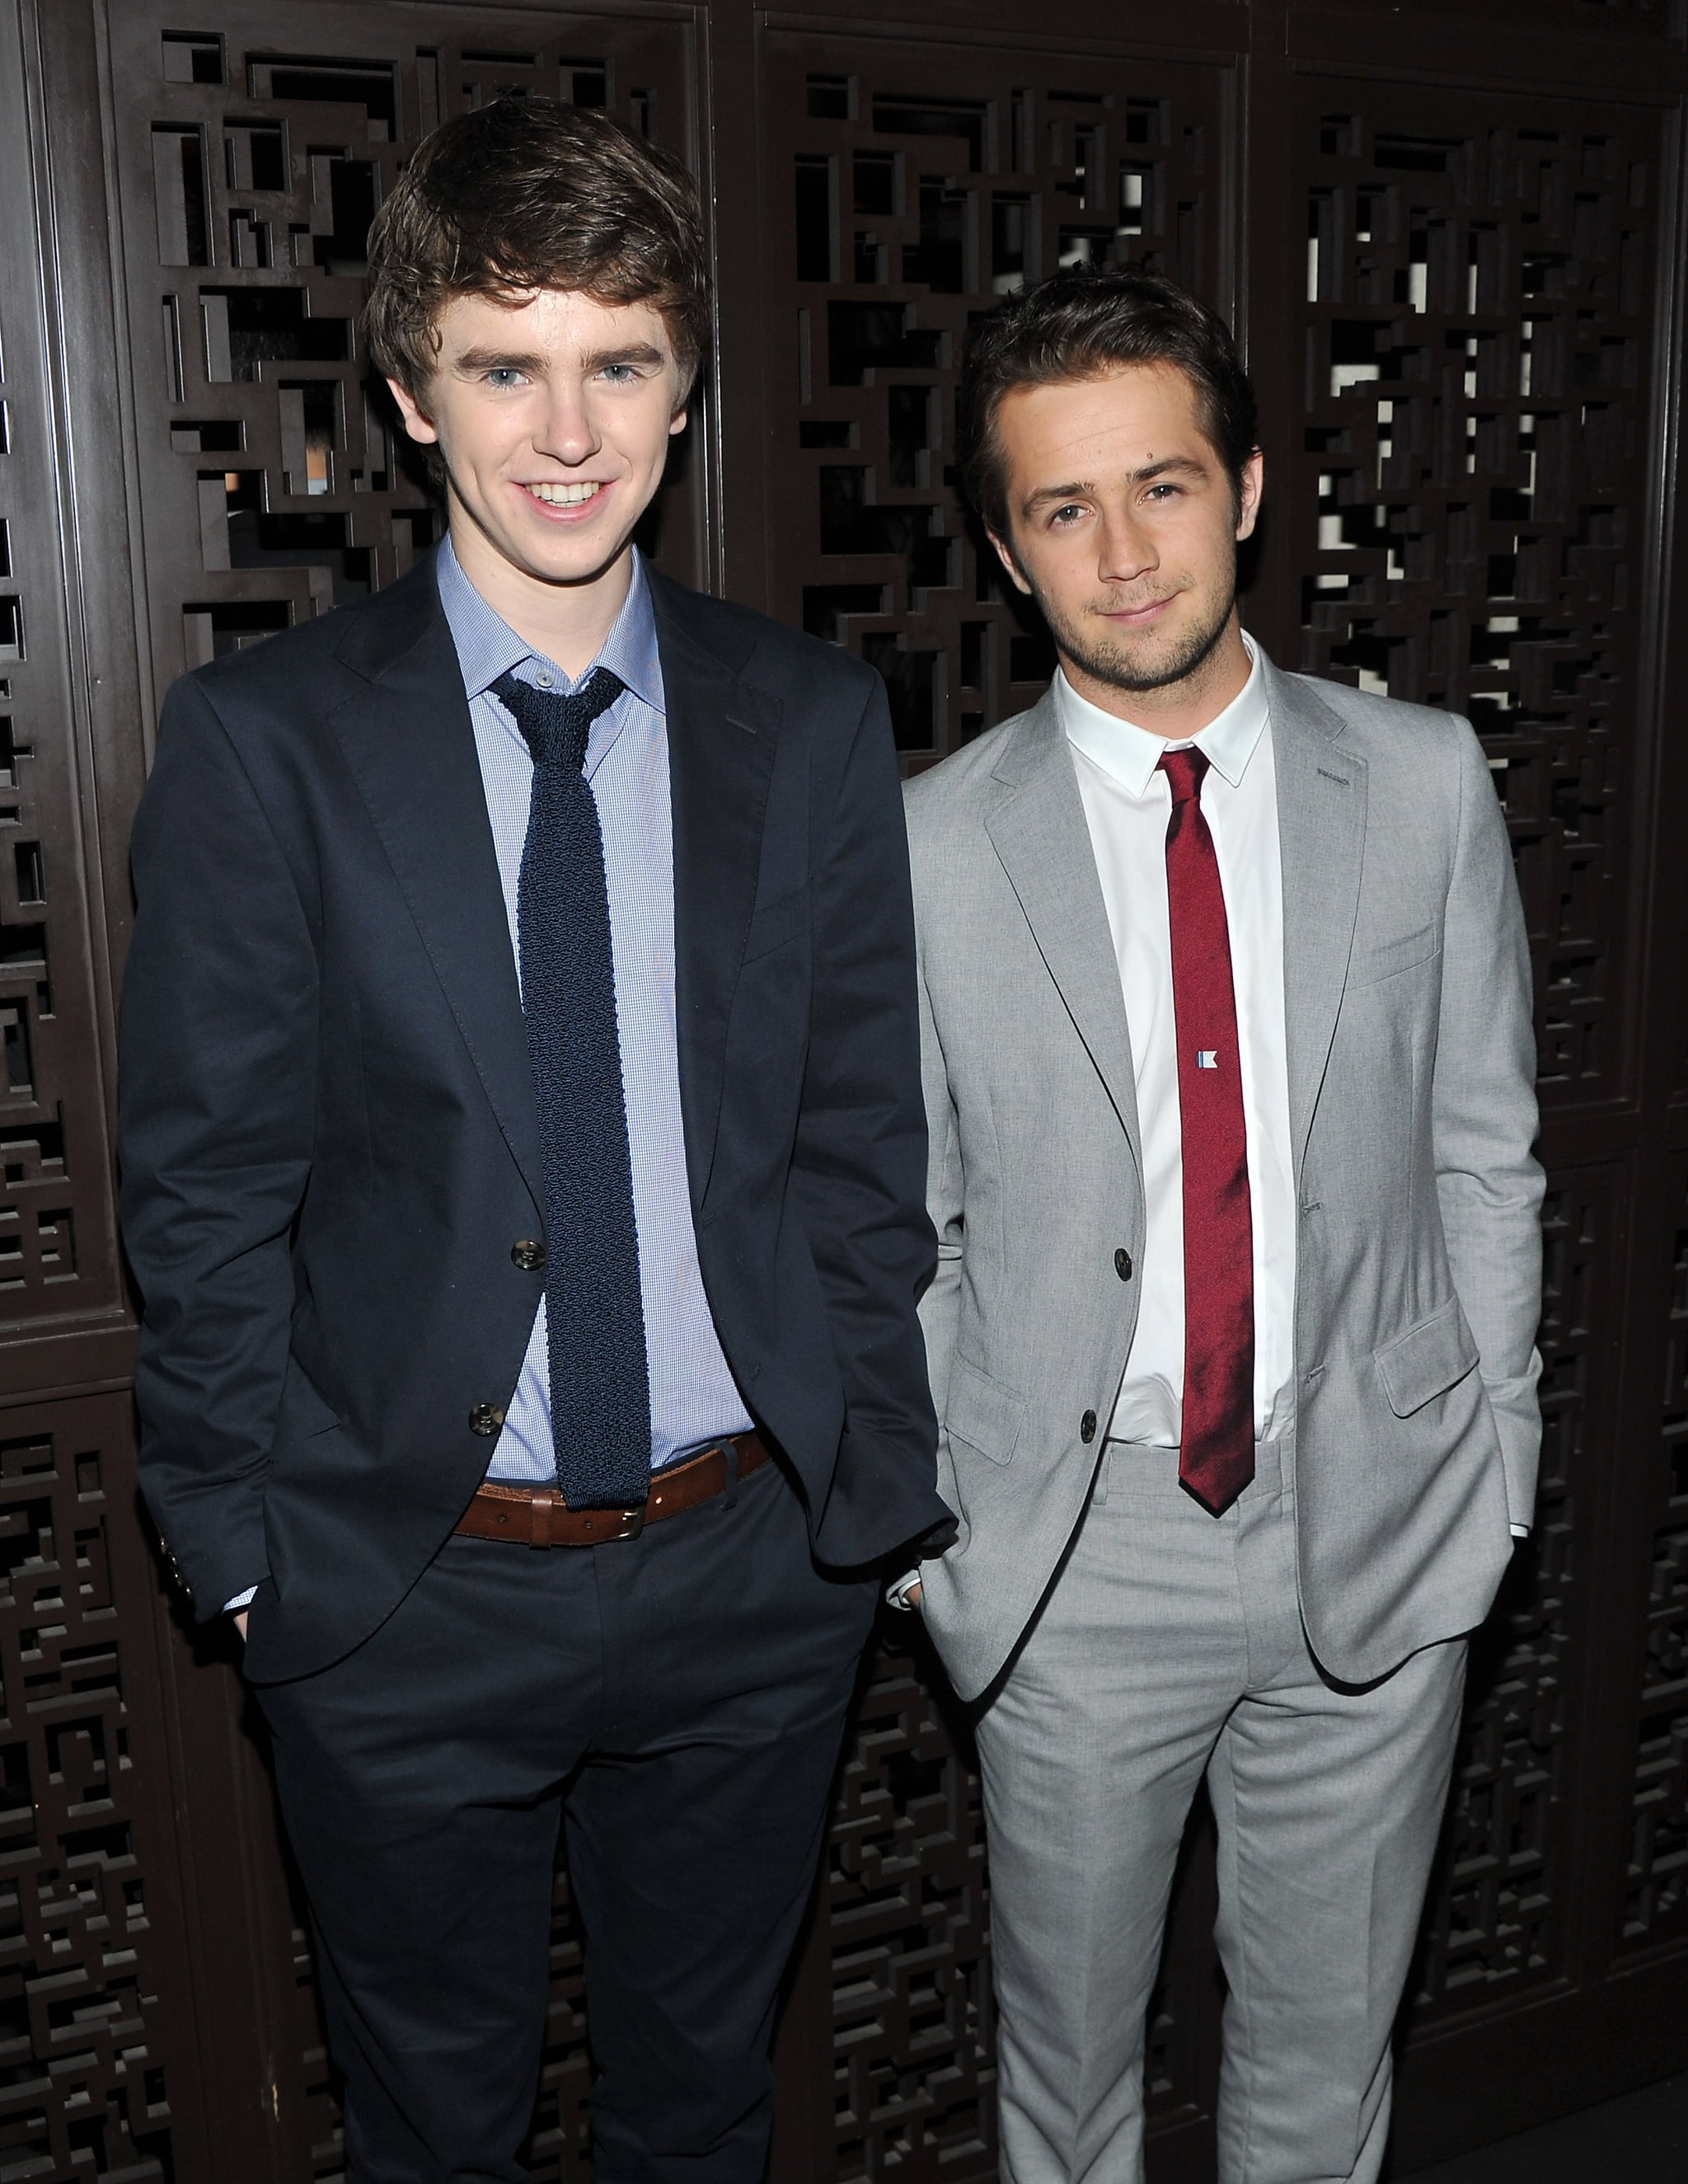 Freddie Highmore and Michael Angarano